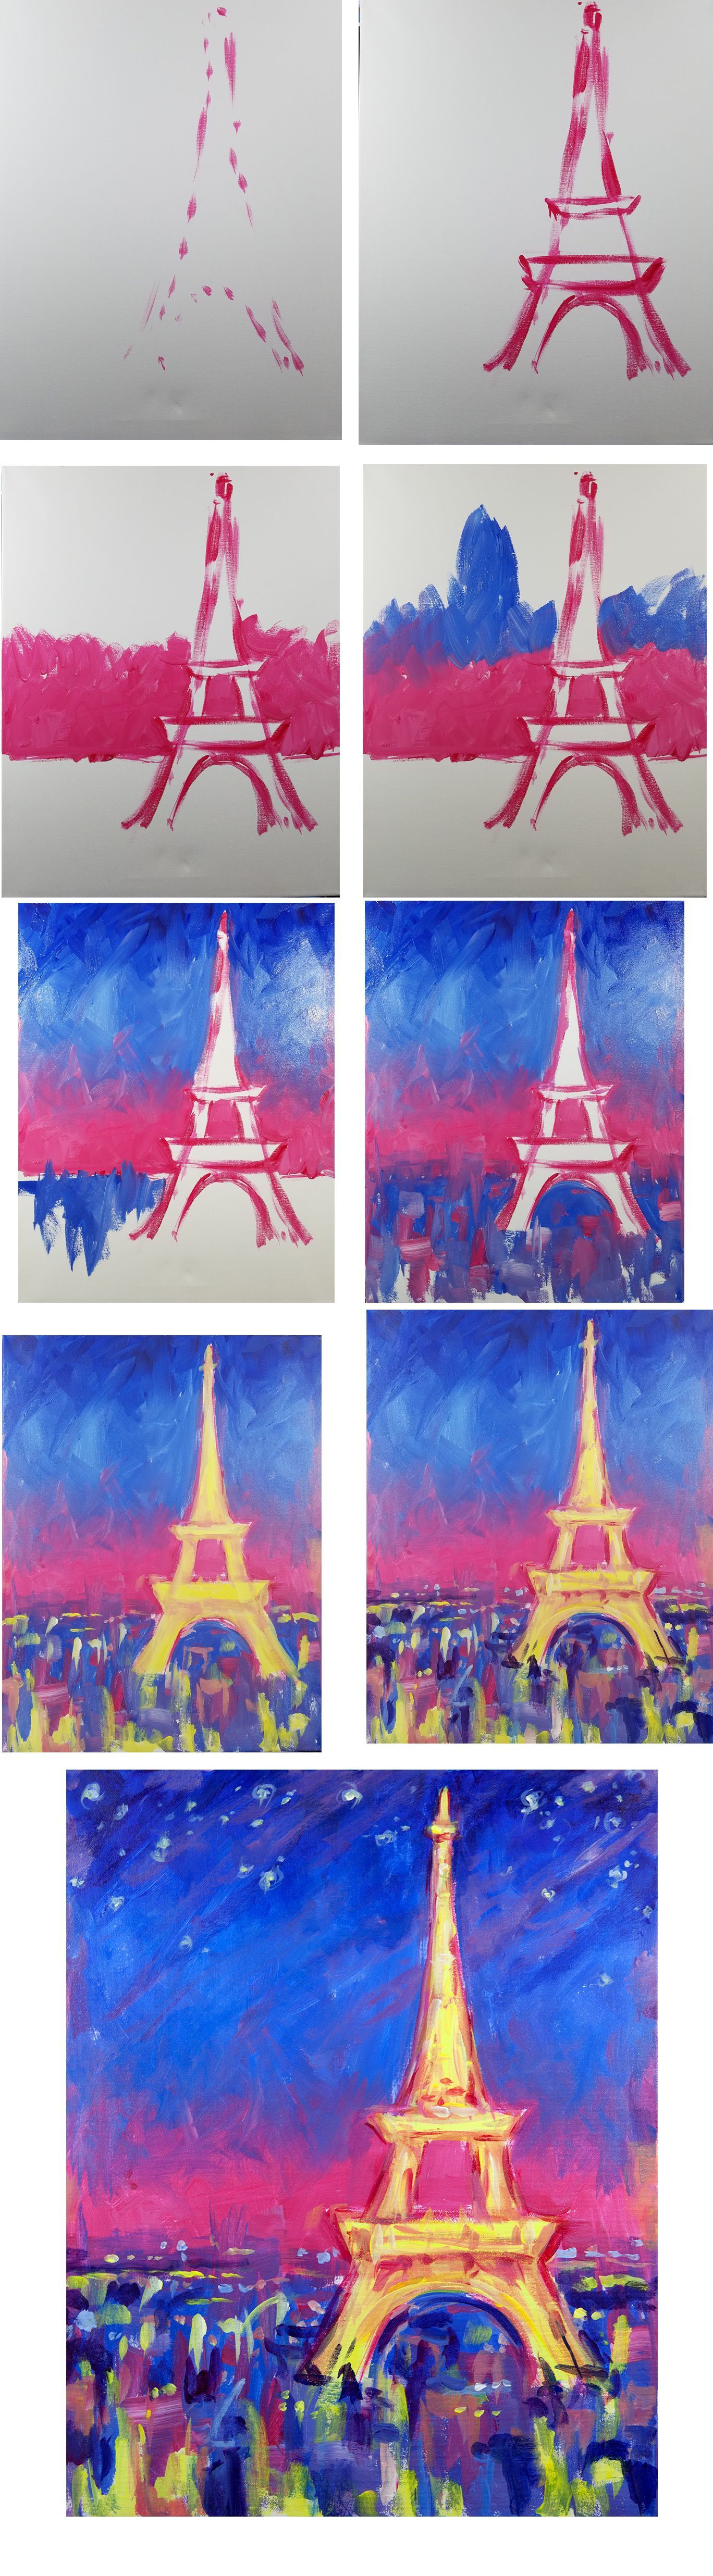 Abstract paris easy brushes big flat medium square optional